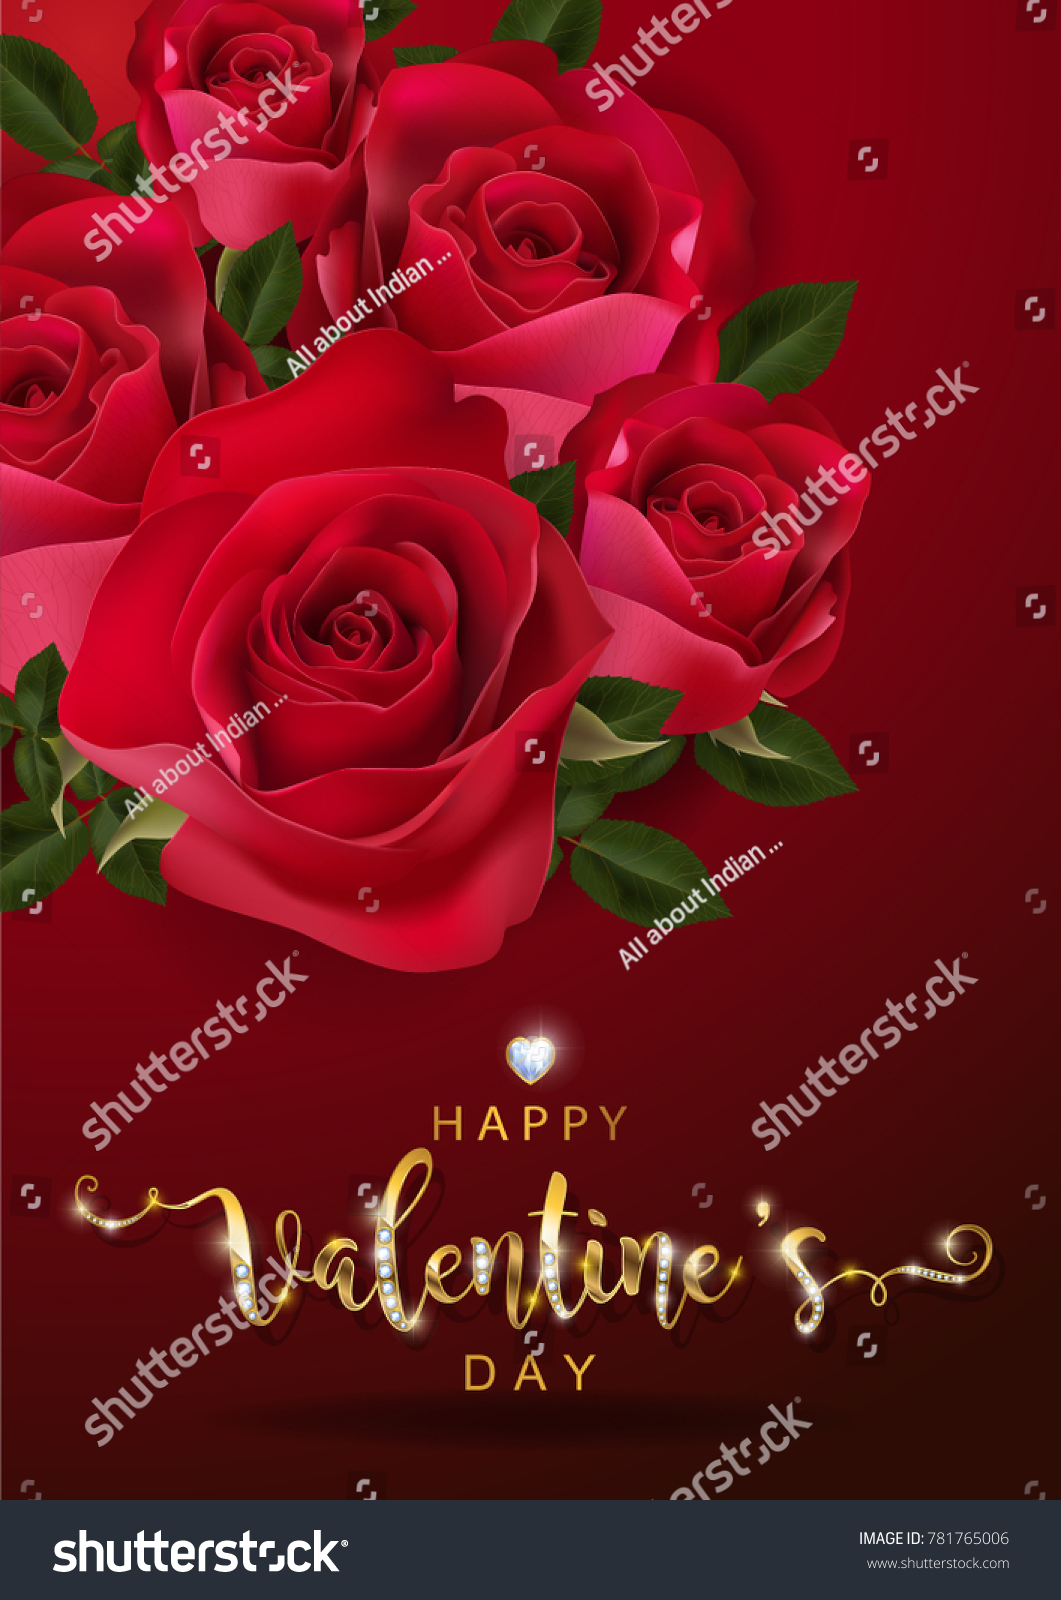 Valentines Day Greeting Cards Templates Realistic Stock Vector